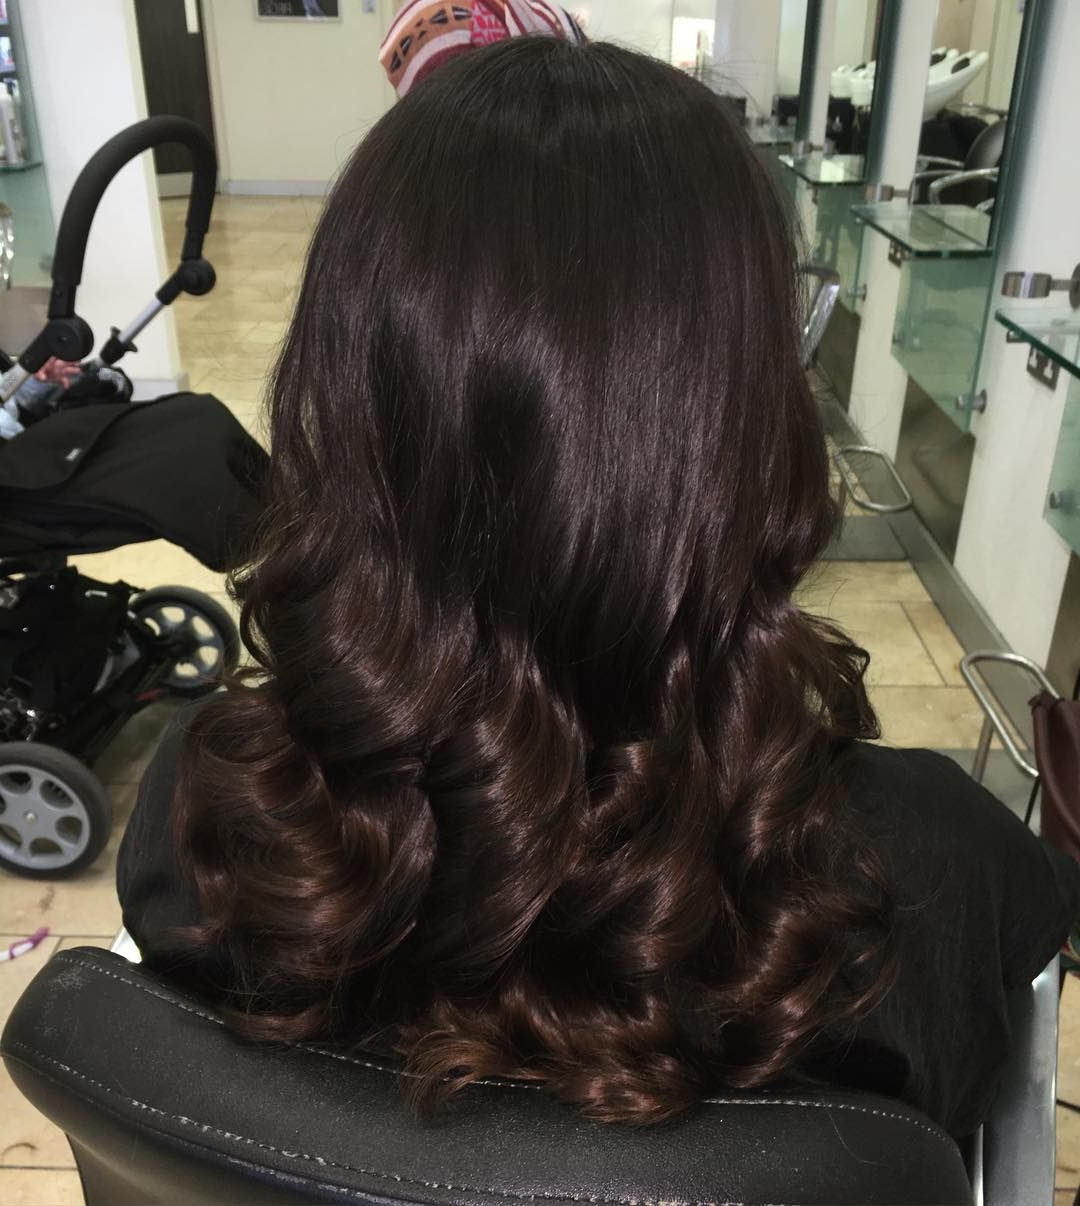 Best And Newest Deep Chocolate Curls Hairstyles With High Contrast Highlights Throughout 50 Delicious Chocolate Brown Hair Colors & Designs (View 8 of 20)